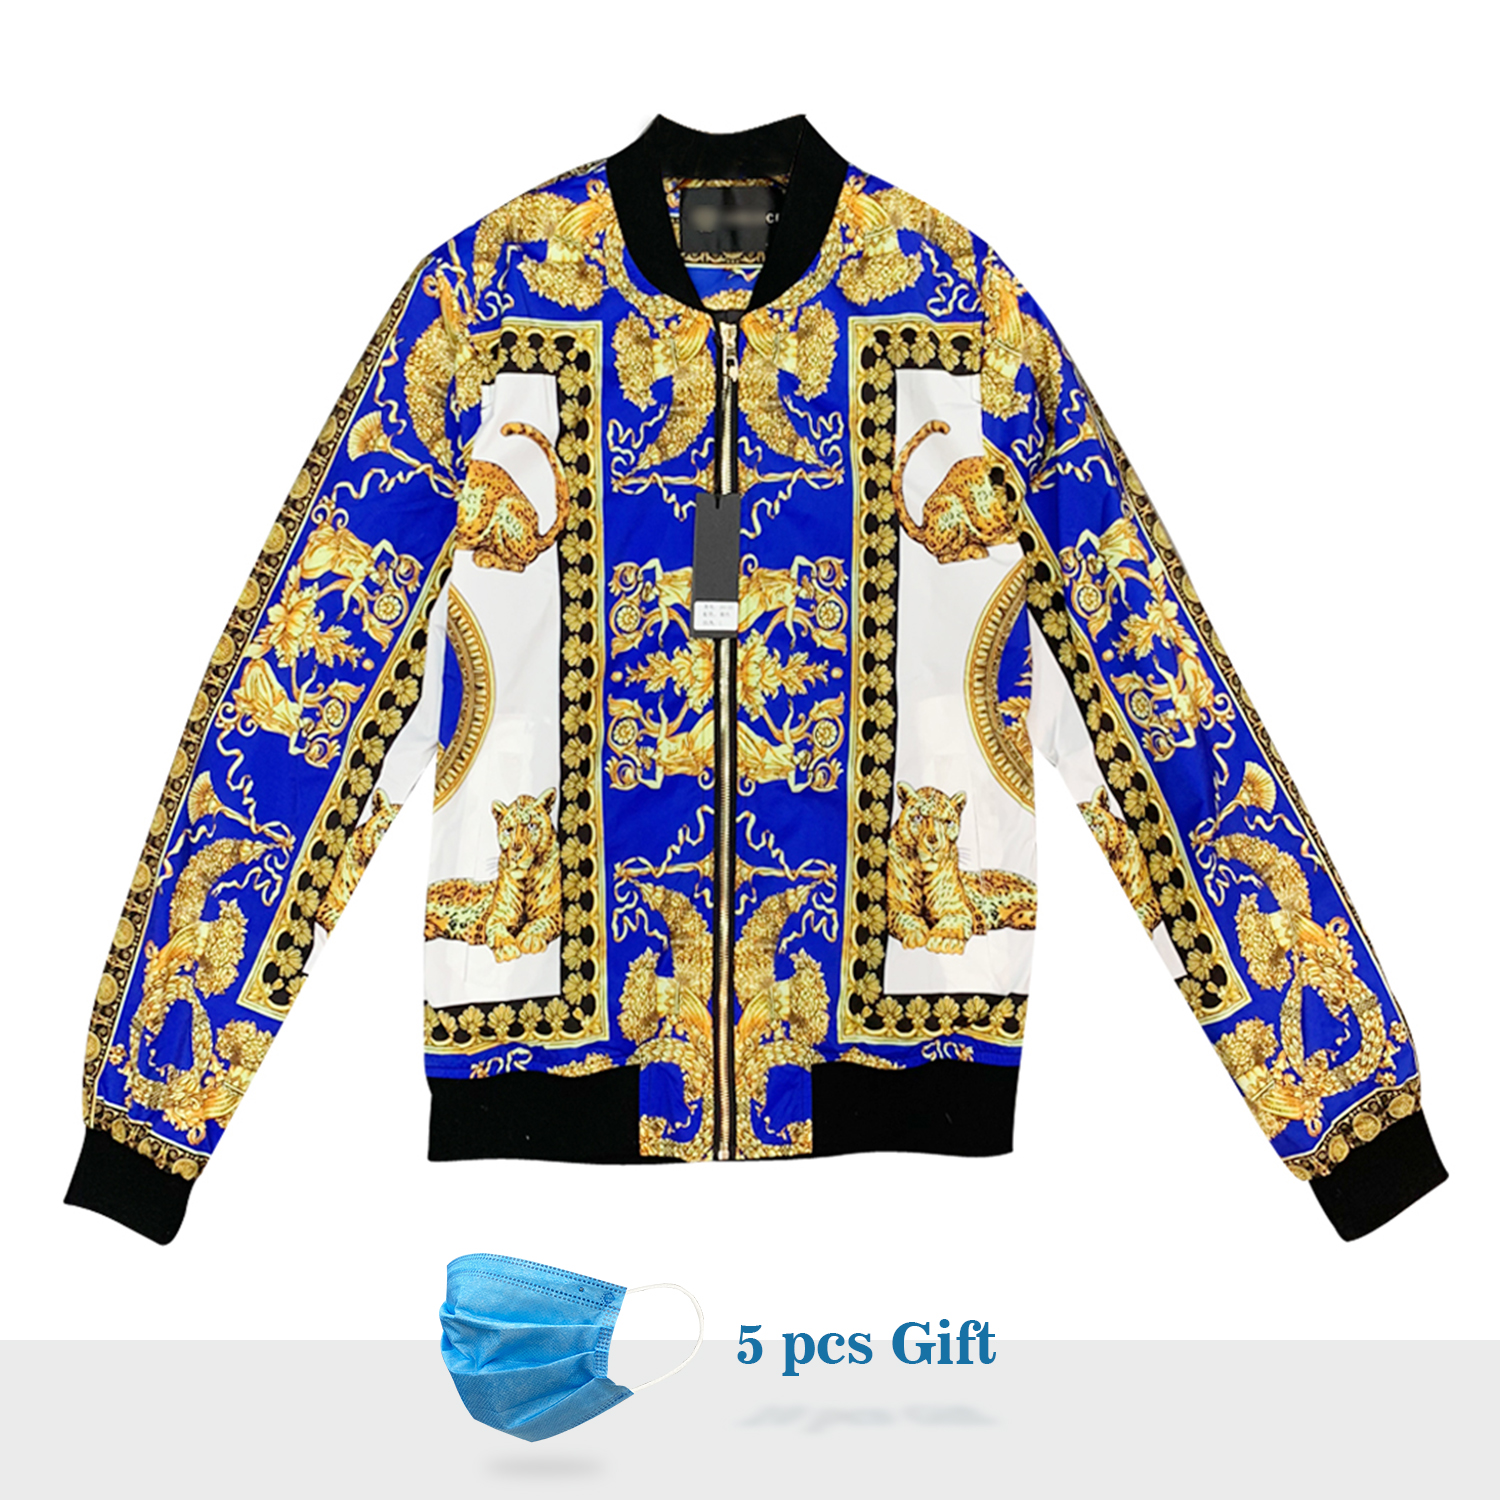 2020 New Luxury Brand Eden Park Tommi  Men Jacket Digital Print With Zipper For Winter And Spring Free Shipping Special Pattern